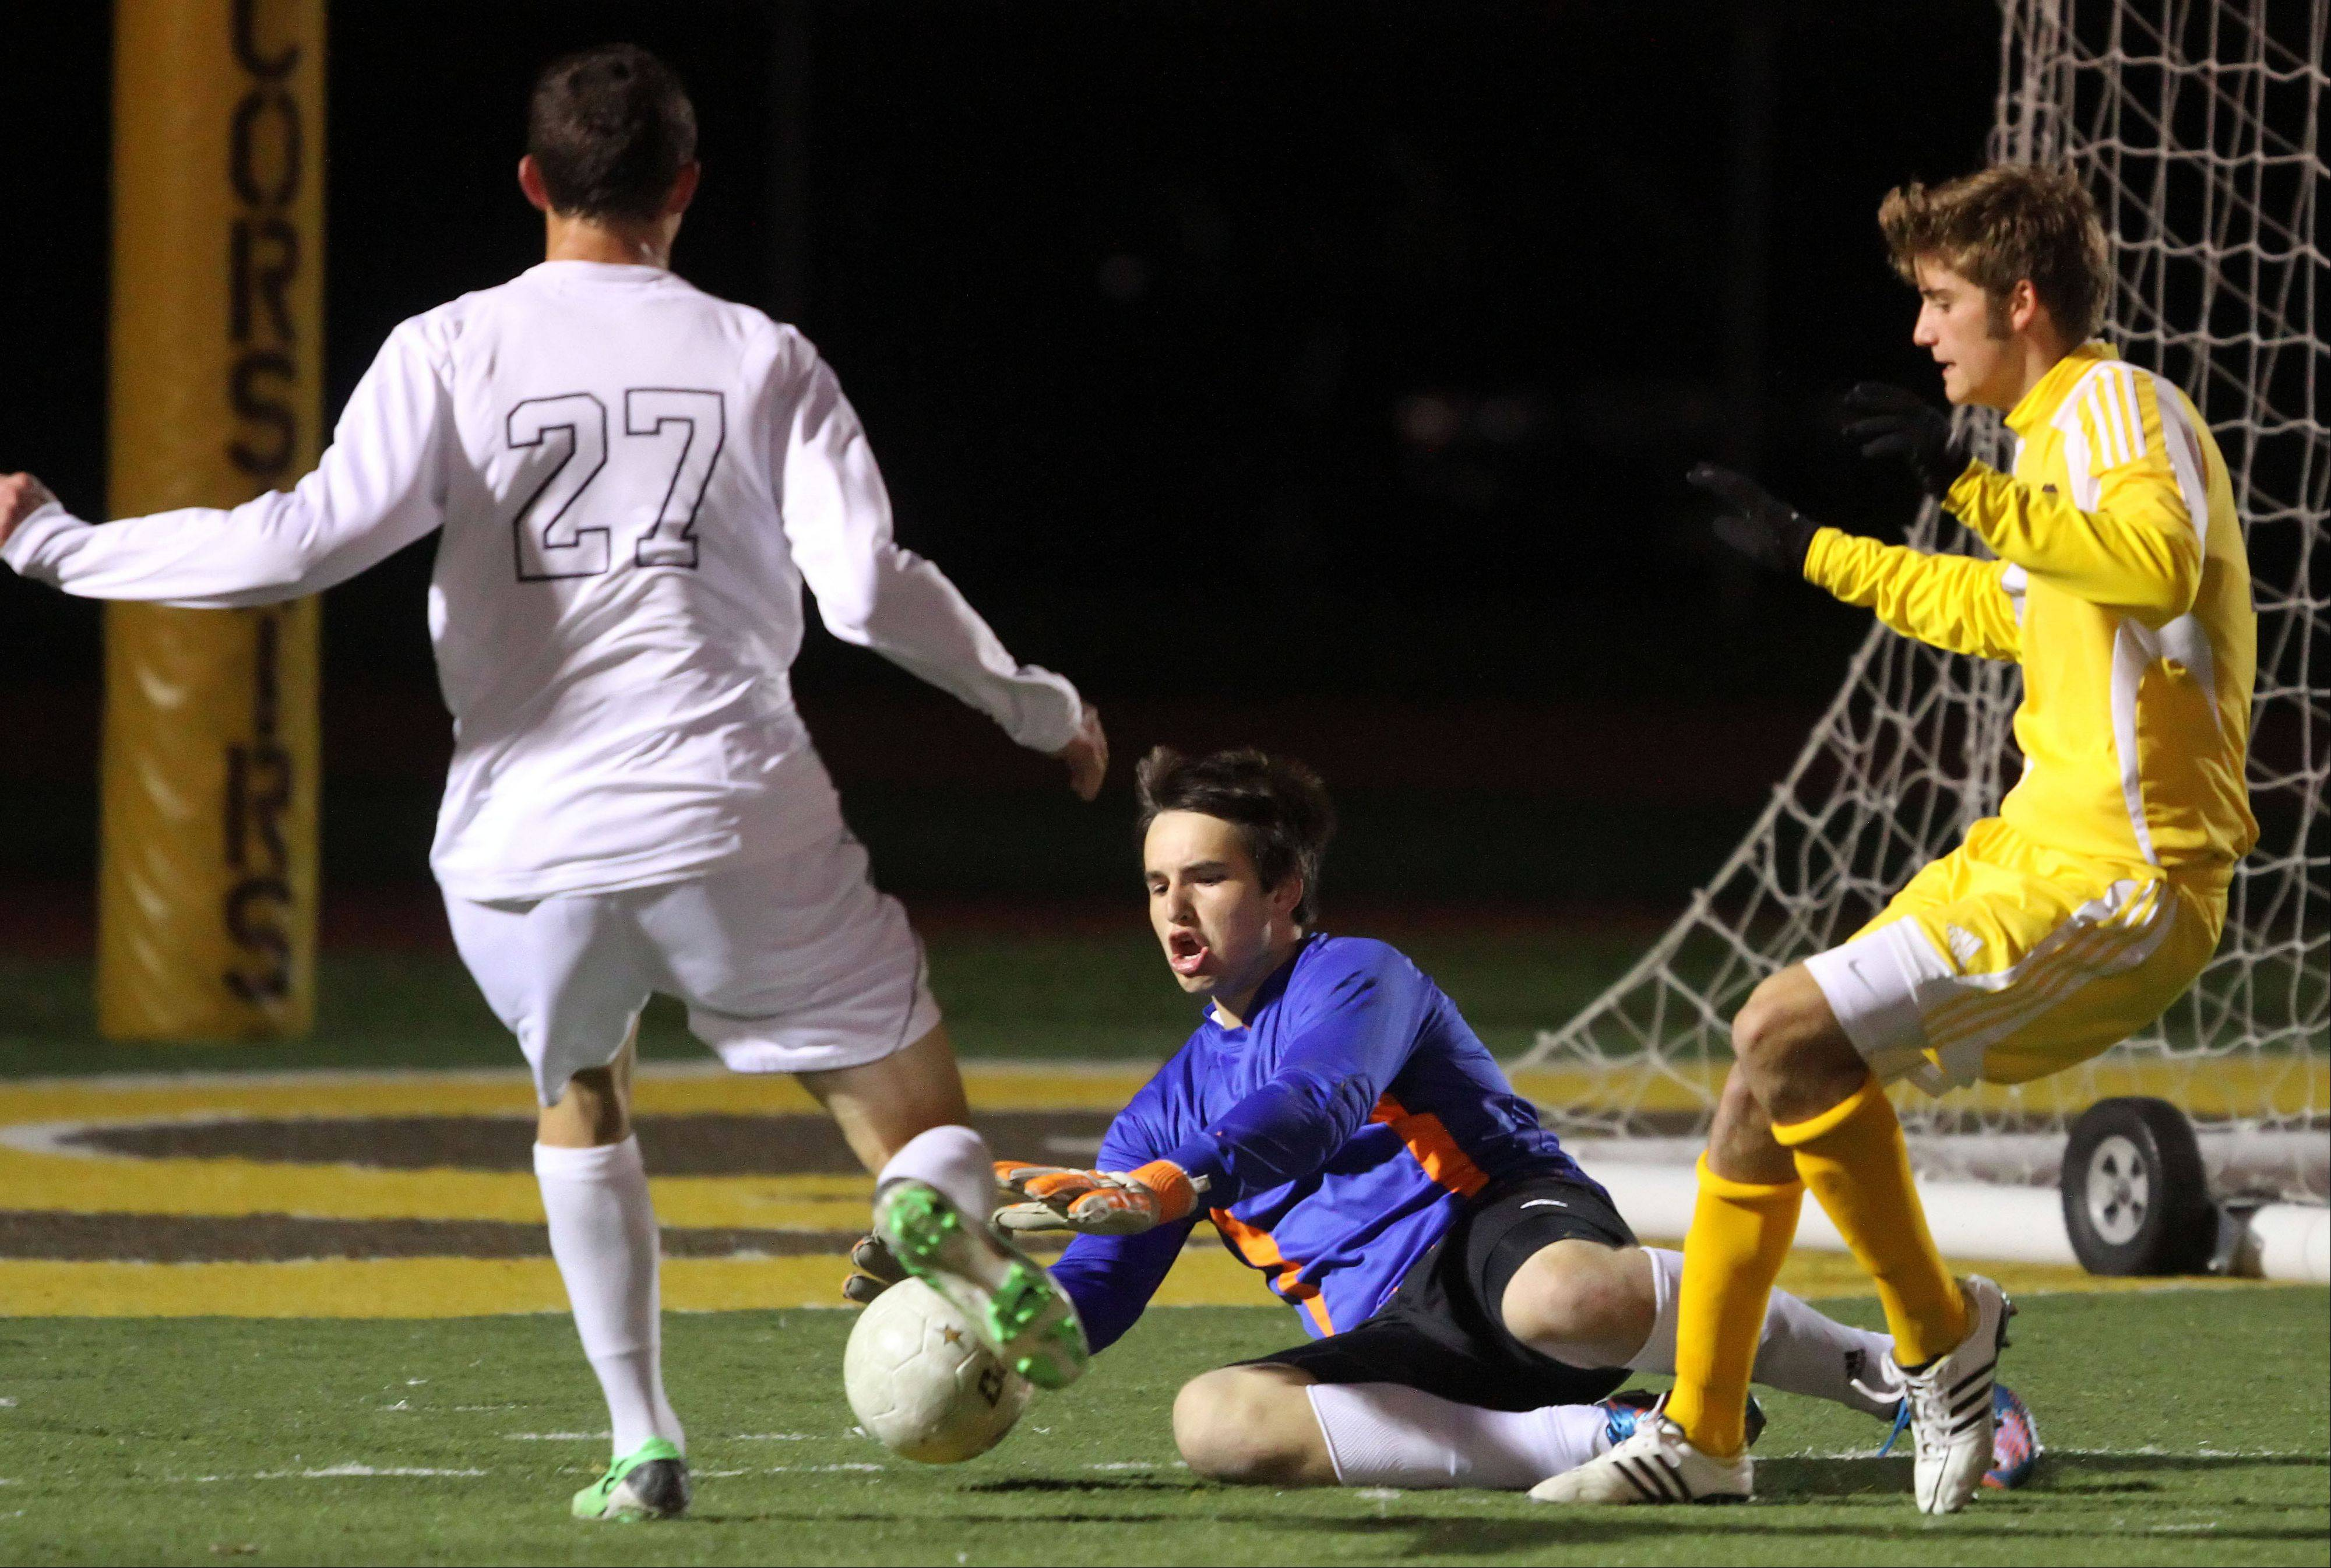 Carmel goalie Jacob Spheeris makes a save on St. Viator's Nick Winter as Carmel's Ryan McKernan trails during regional semifinal action Tuesday night at Carmel Catholic High School.